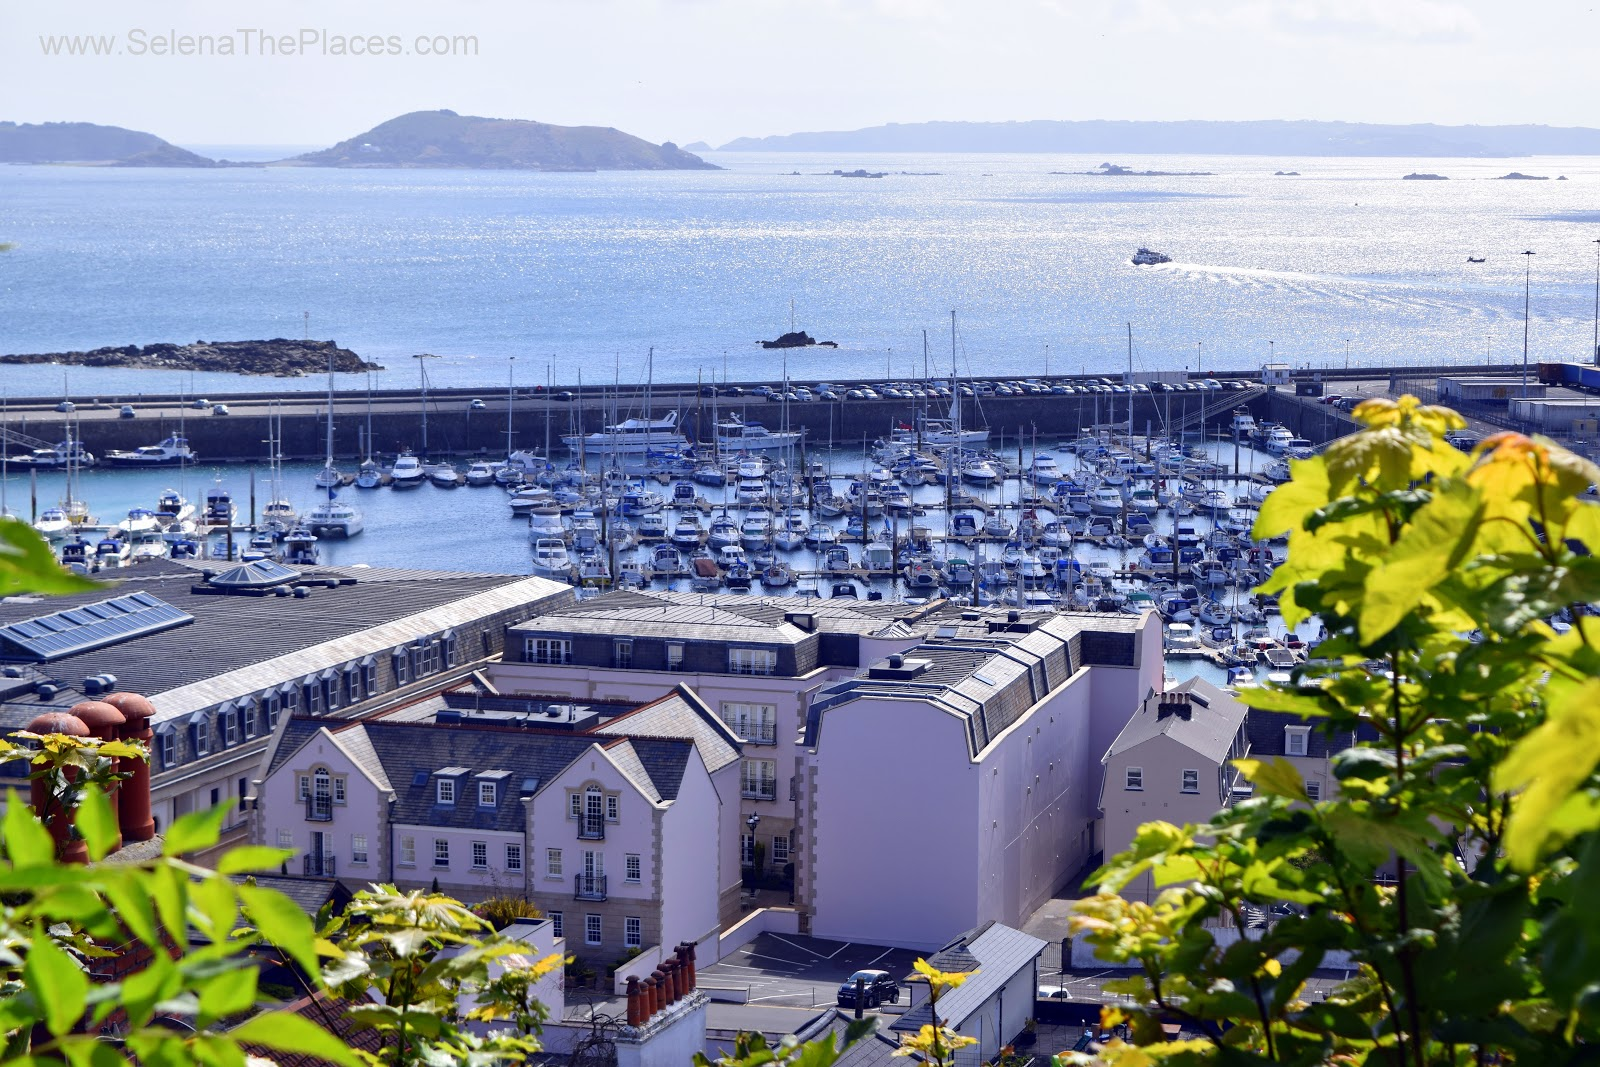 City Break to St. Peter Port, Guernsey